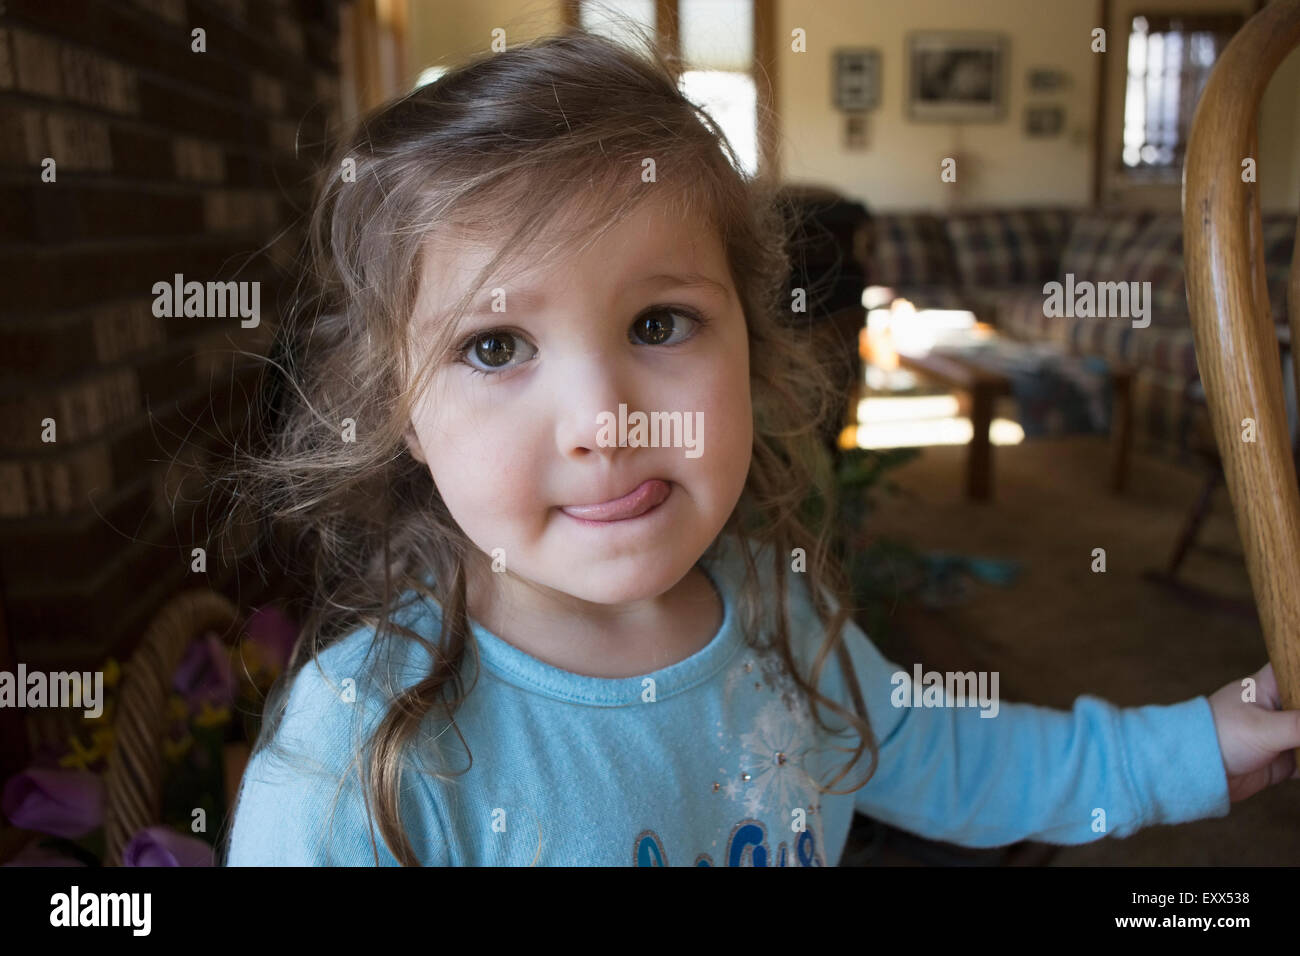 Portrait of girl sticking out tongue - Stock Image